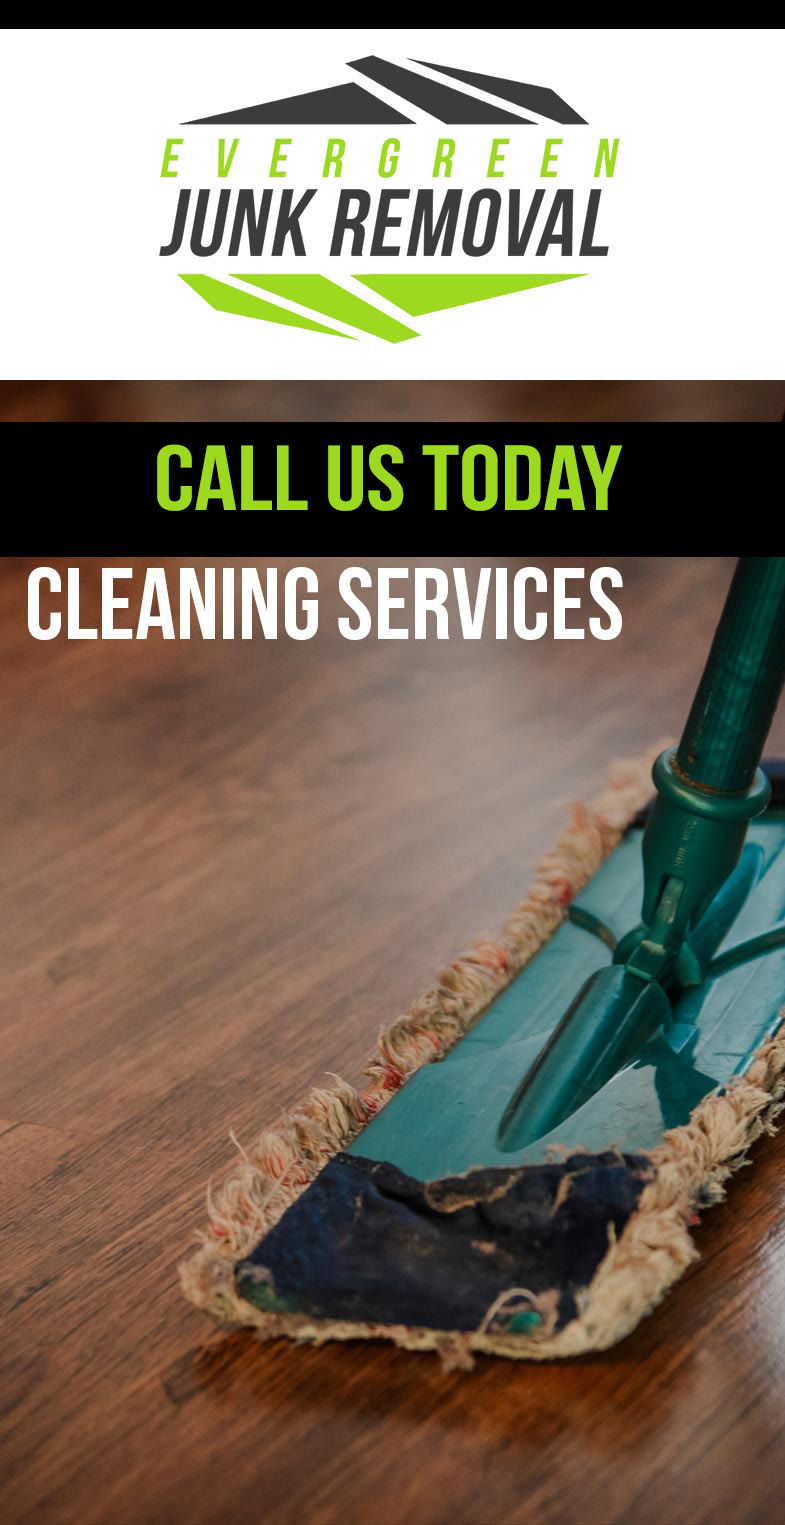 Hallandale Beach Cleaning Services